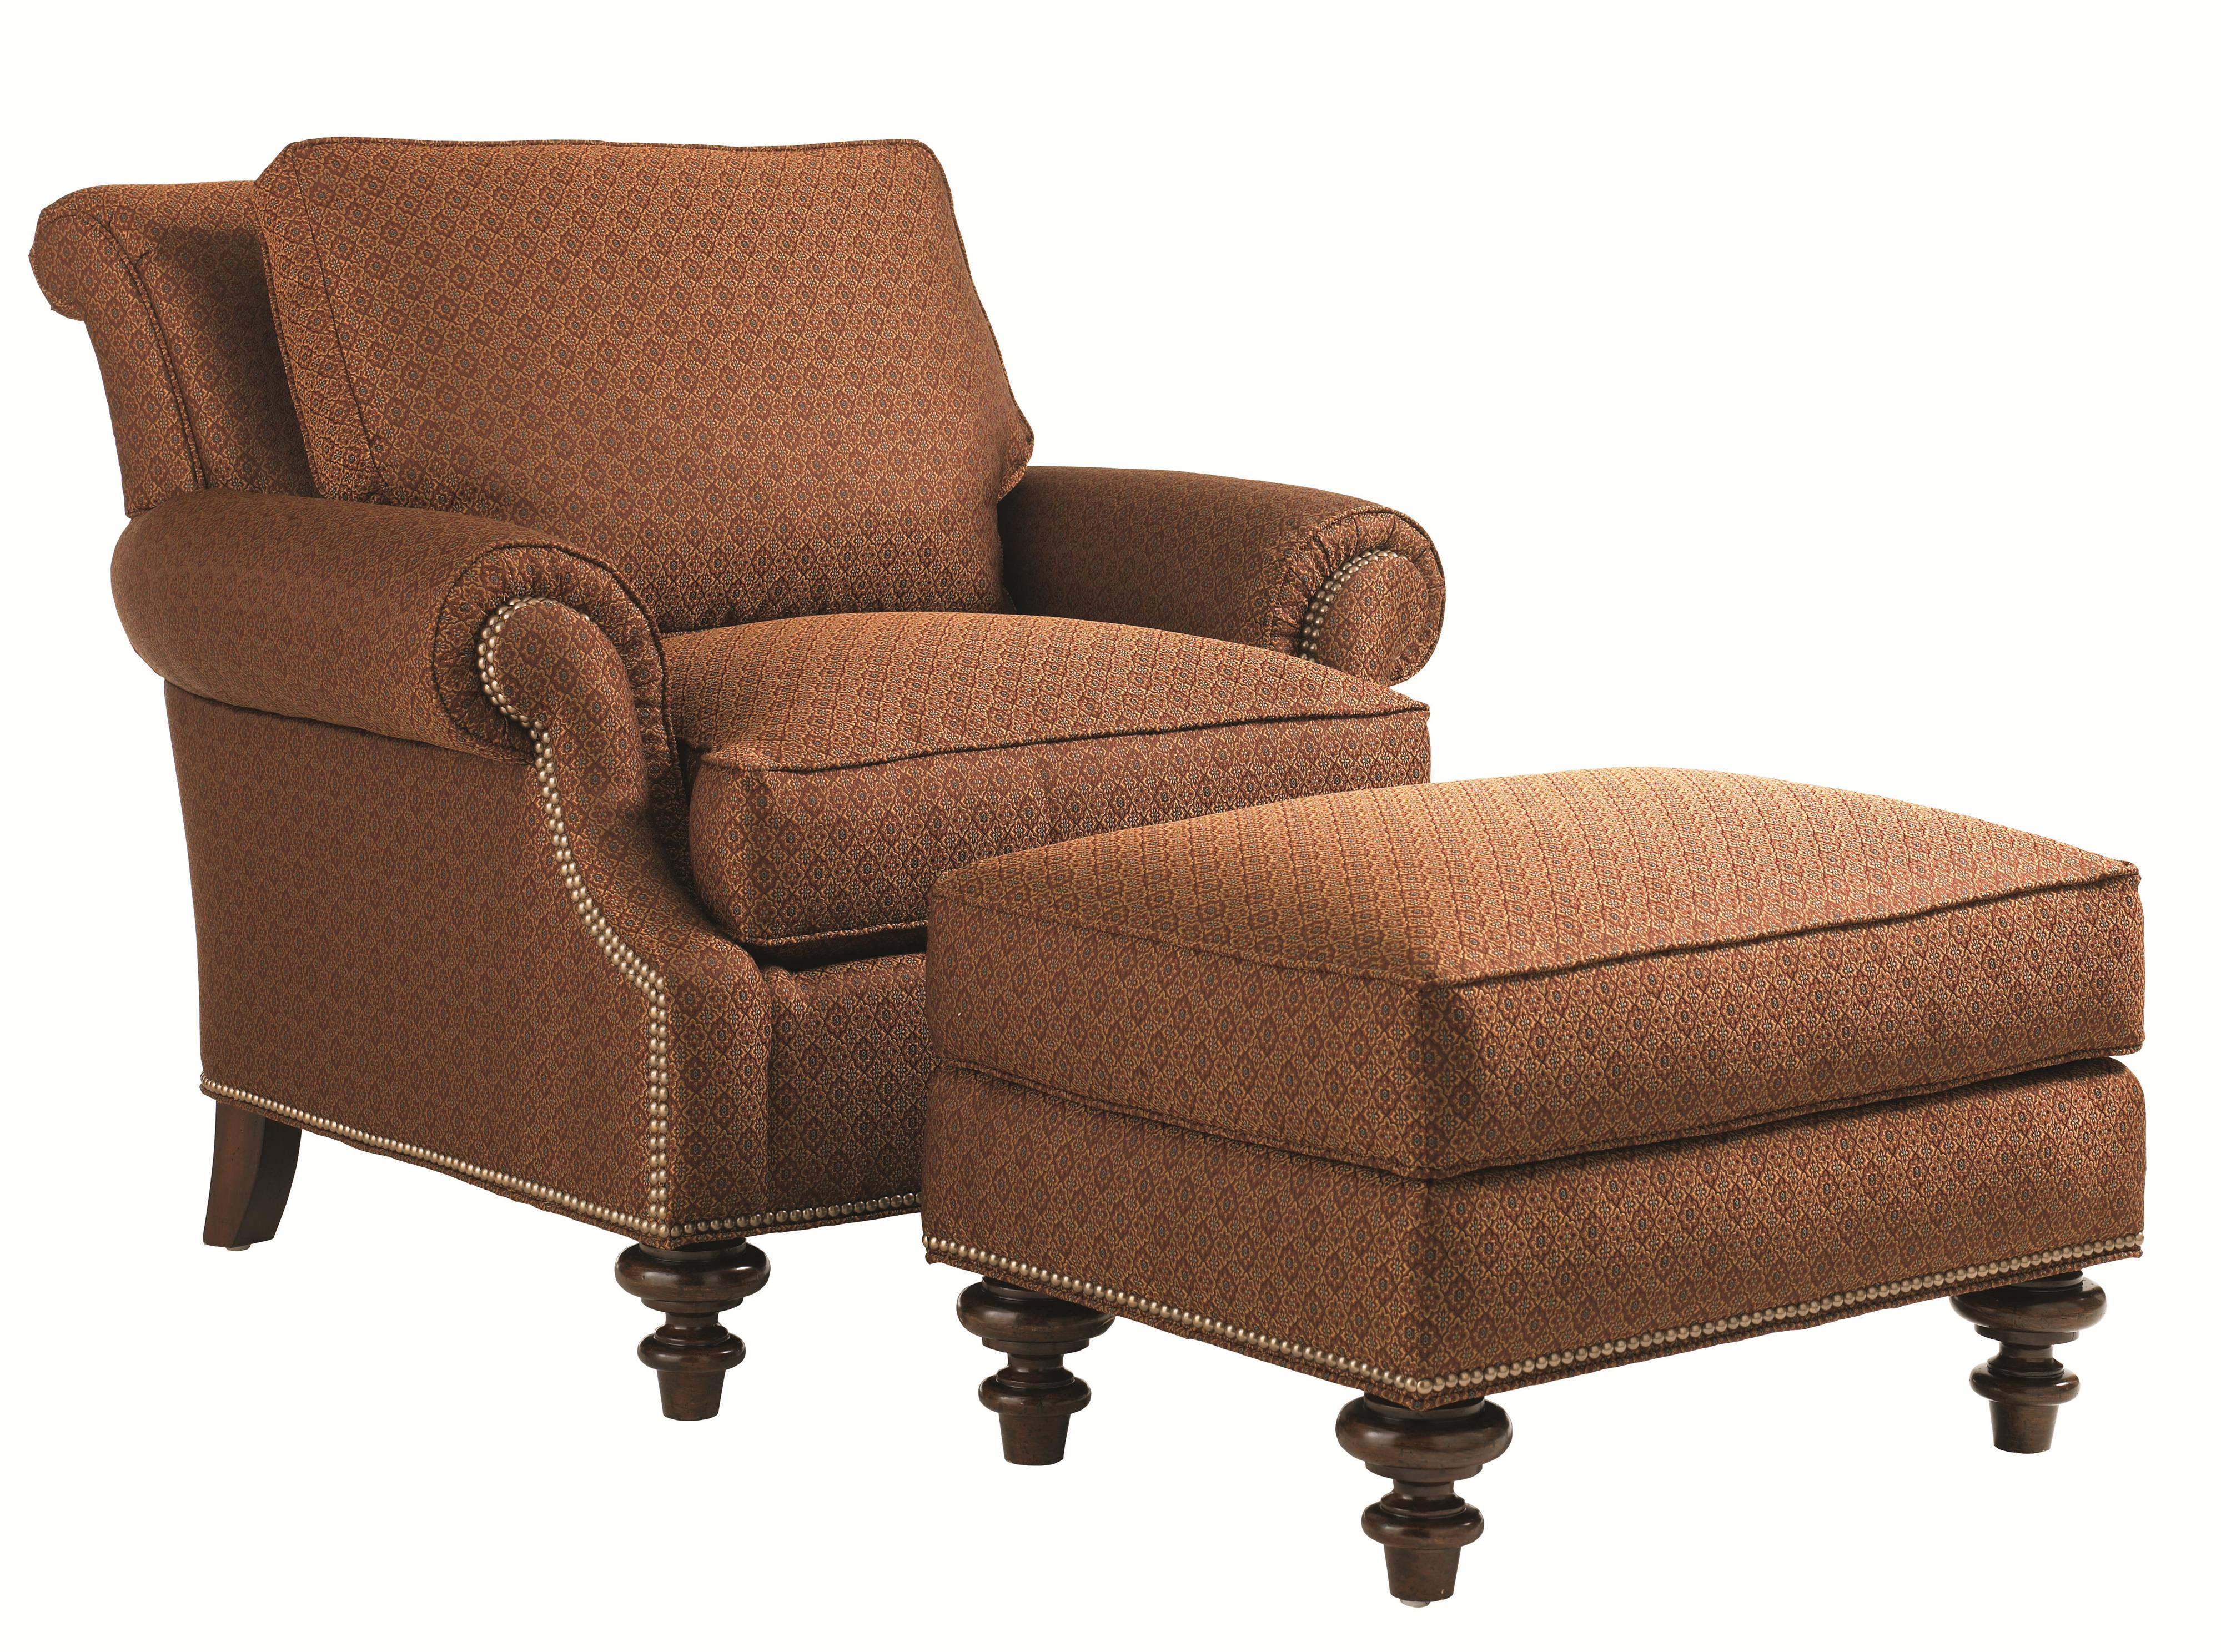 Lexington Upholstery Darby Chair and Ottoman by Lexington at Johnny Janosik